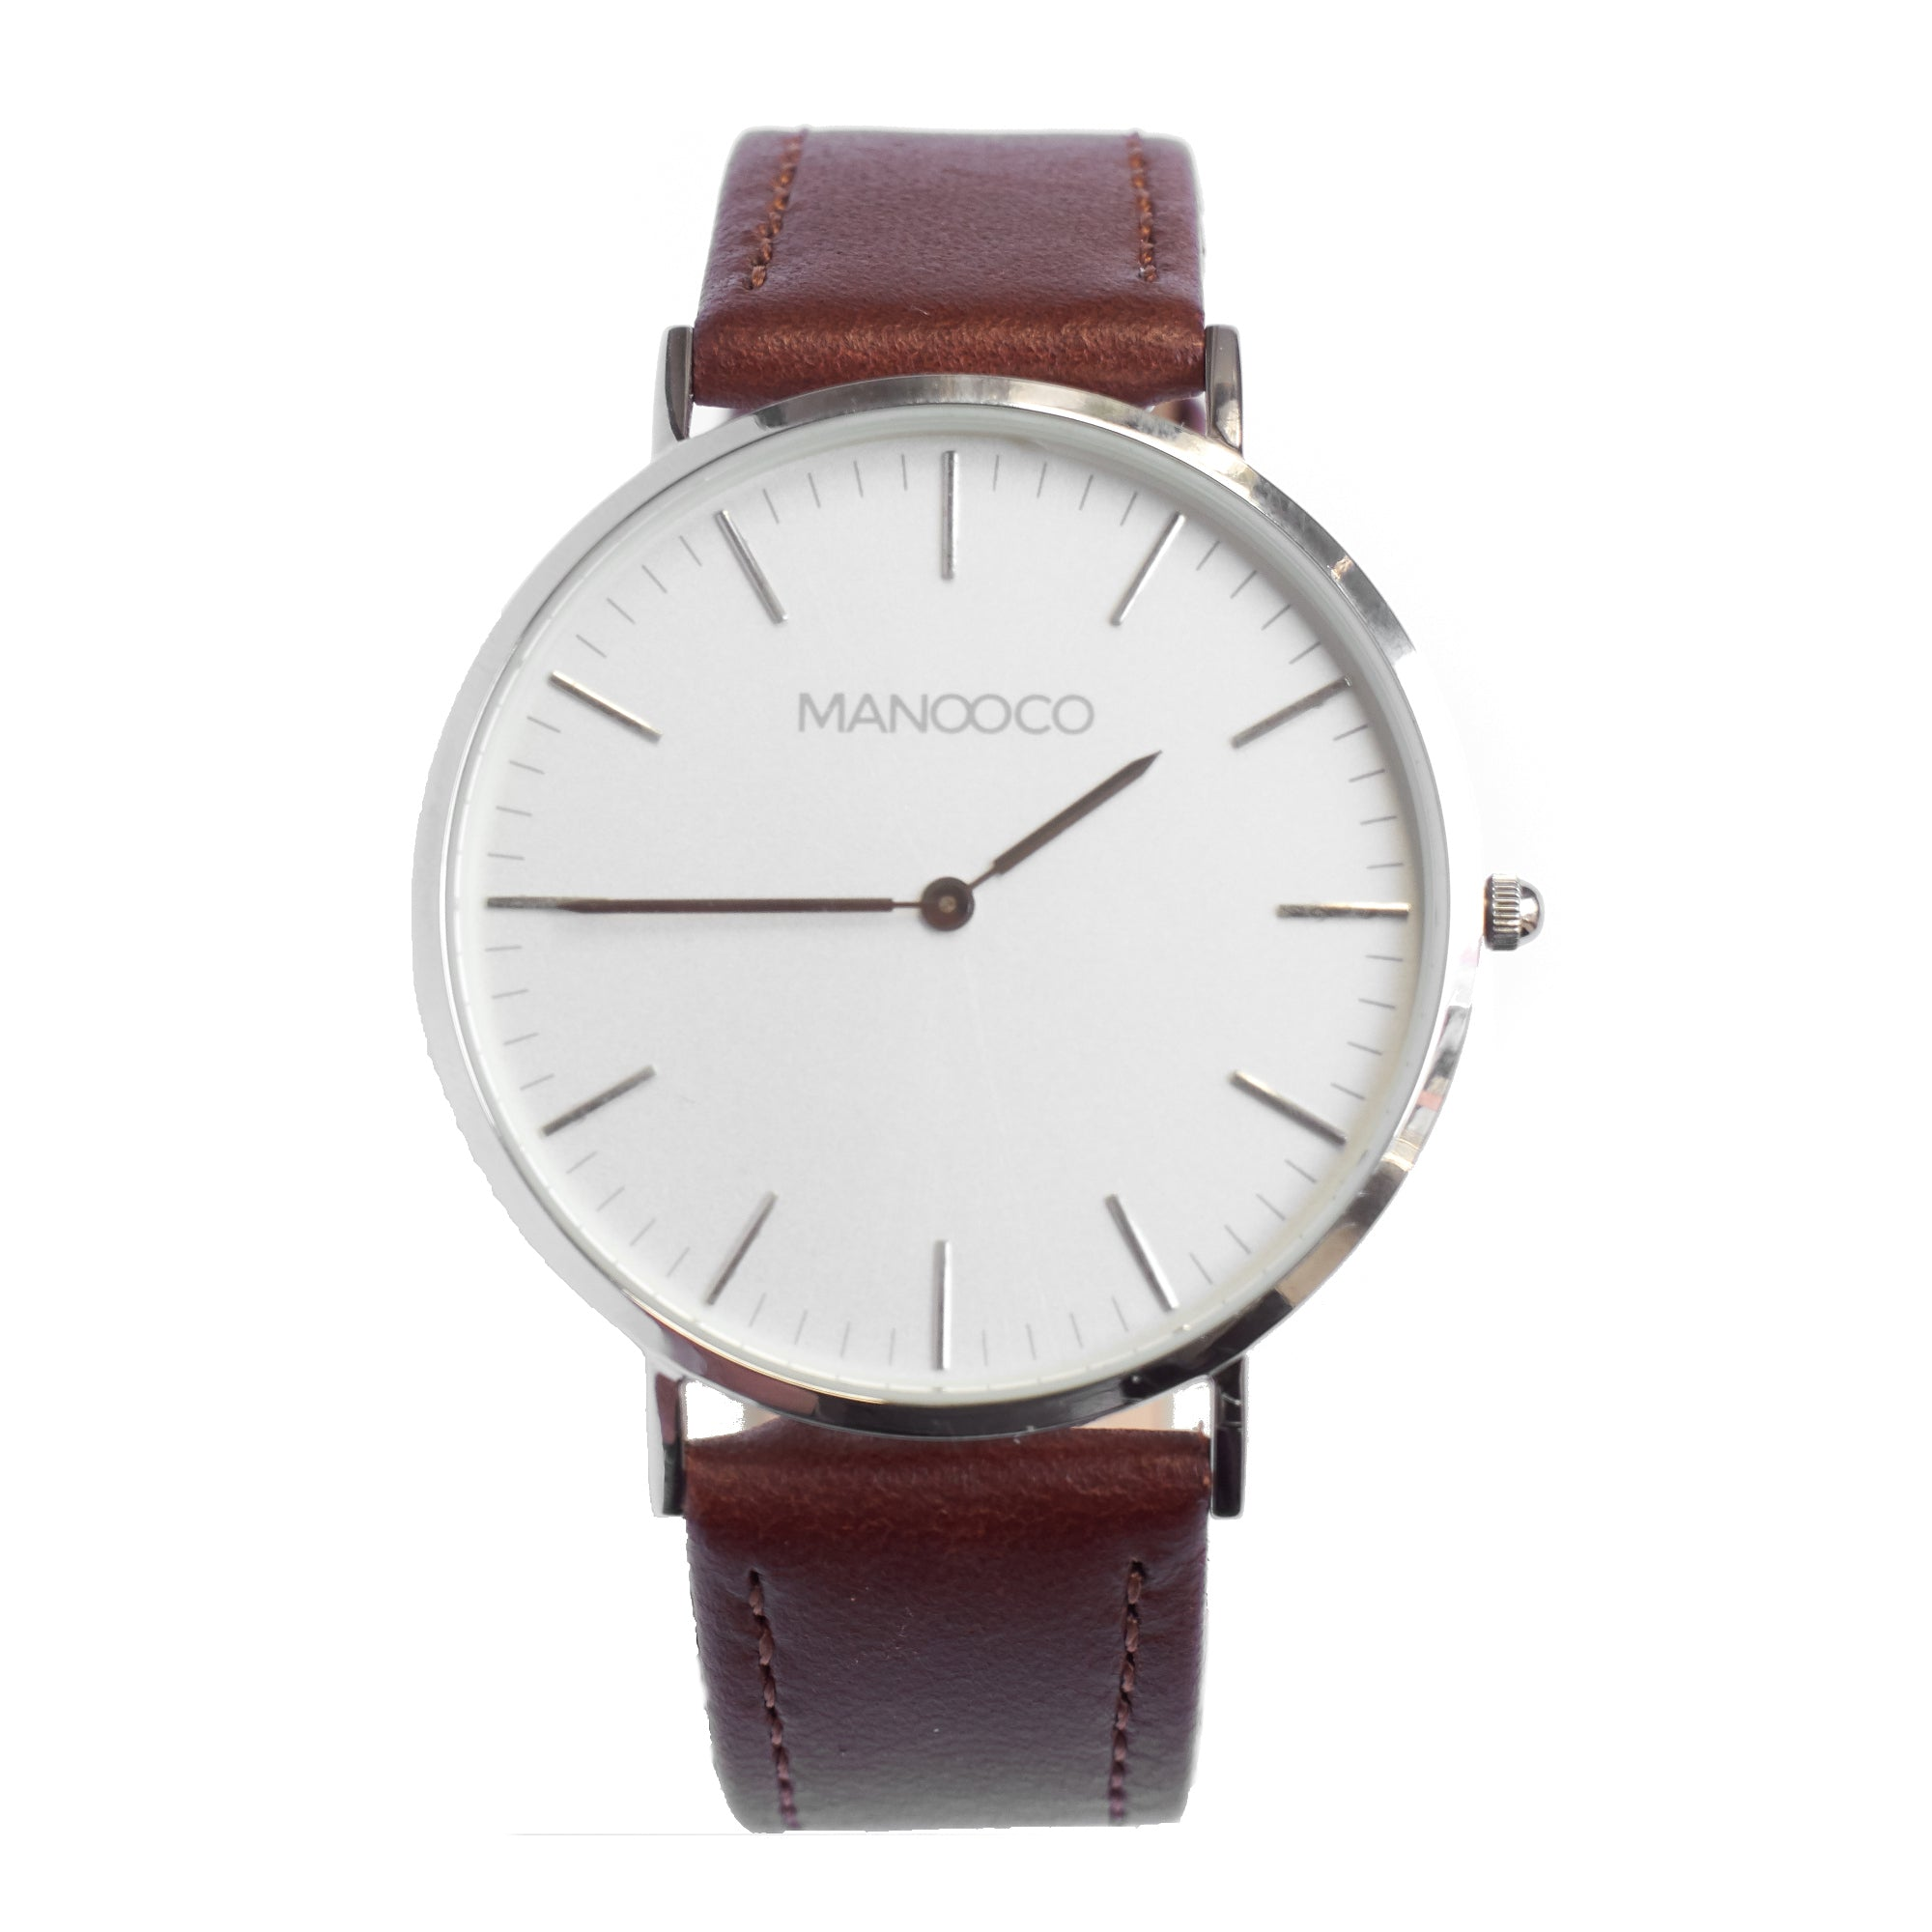 Zephyr Silver / Dark Brown Leather - Watch - MANOOCO - Watch - manooco